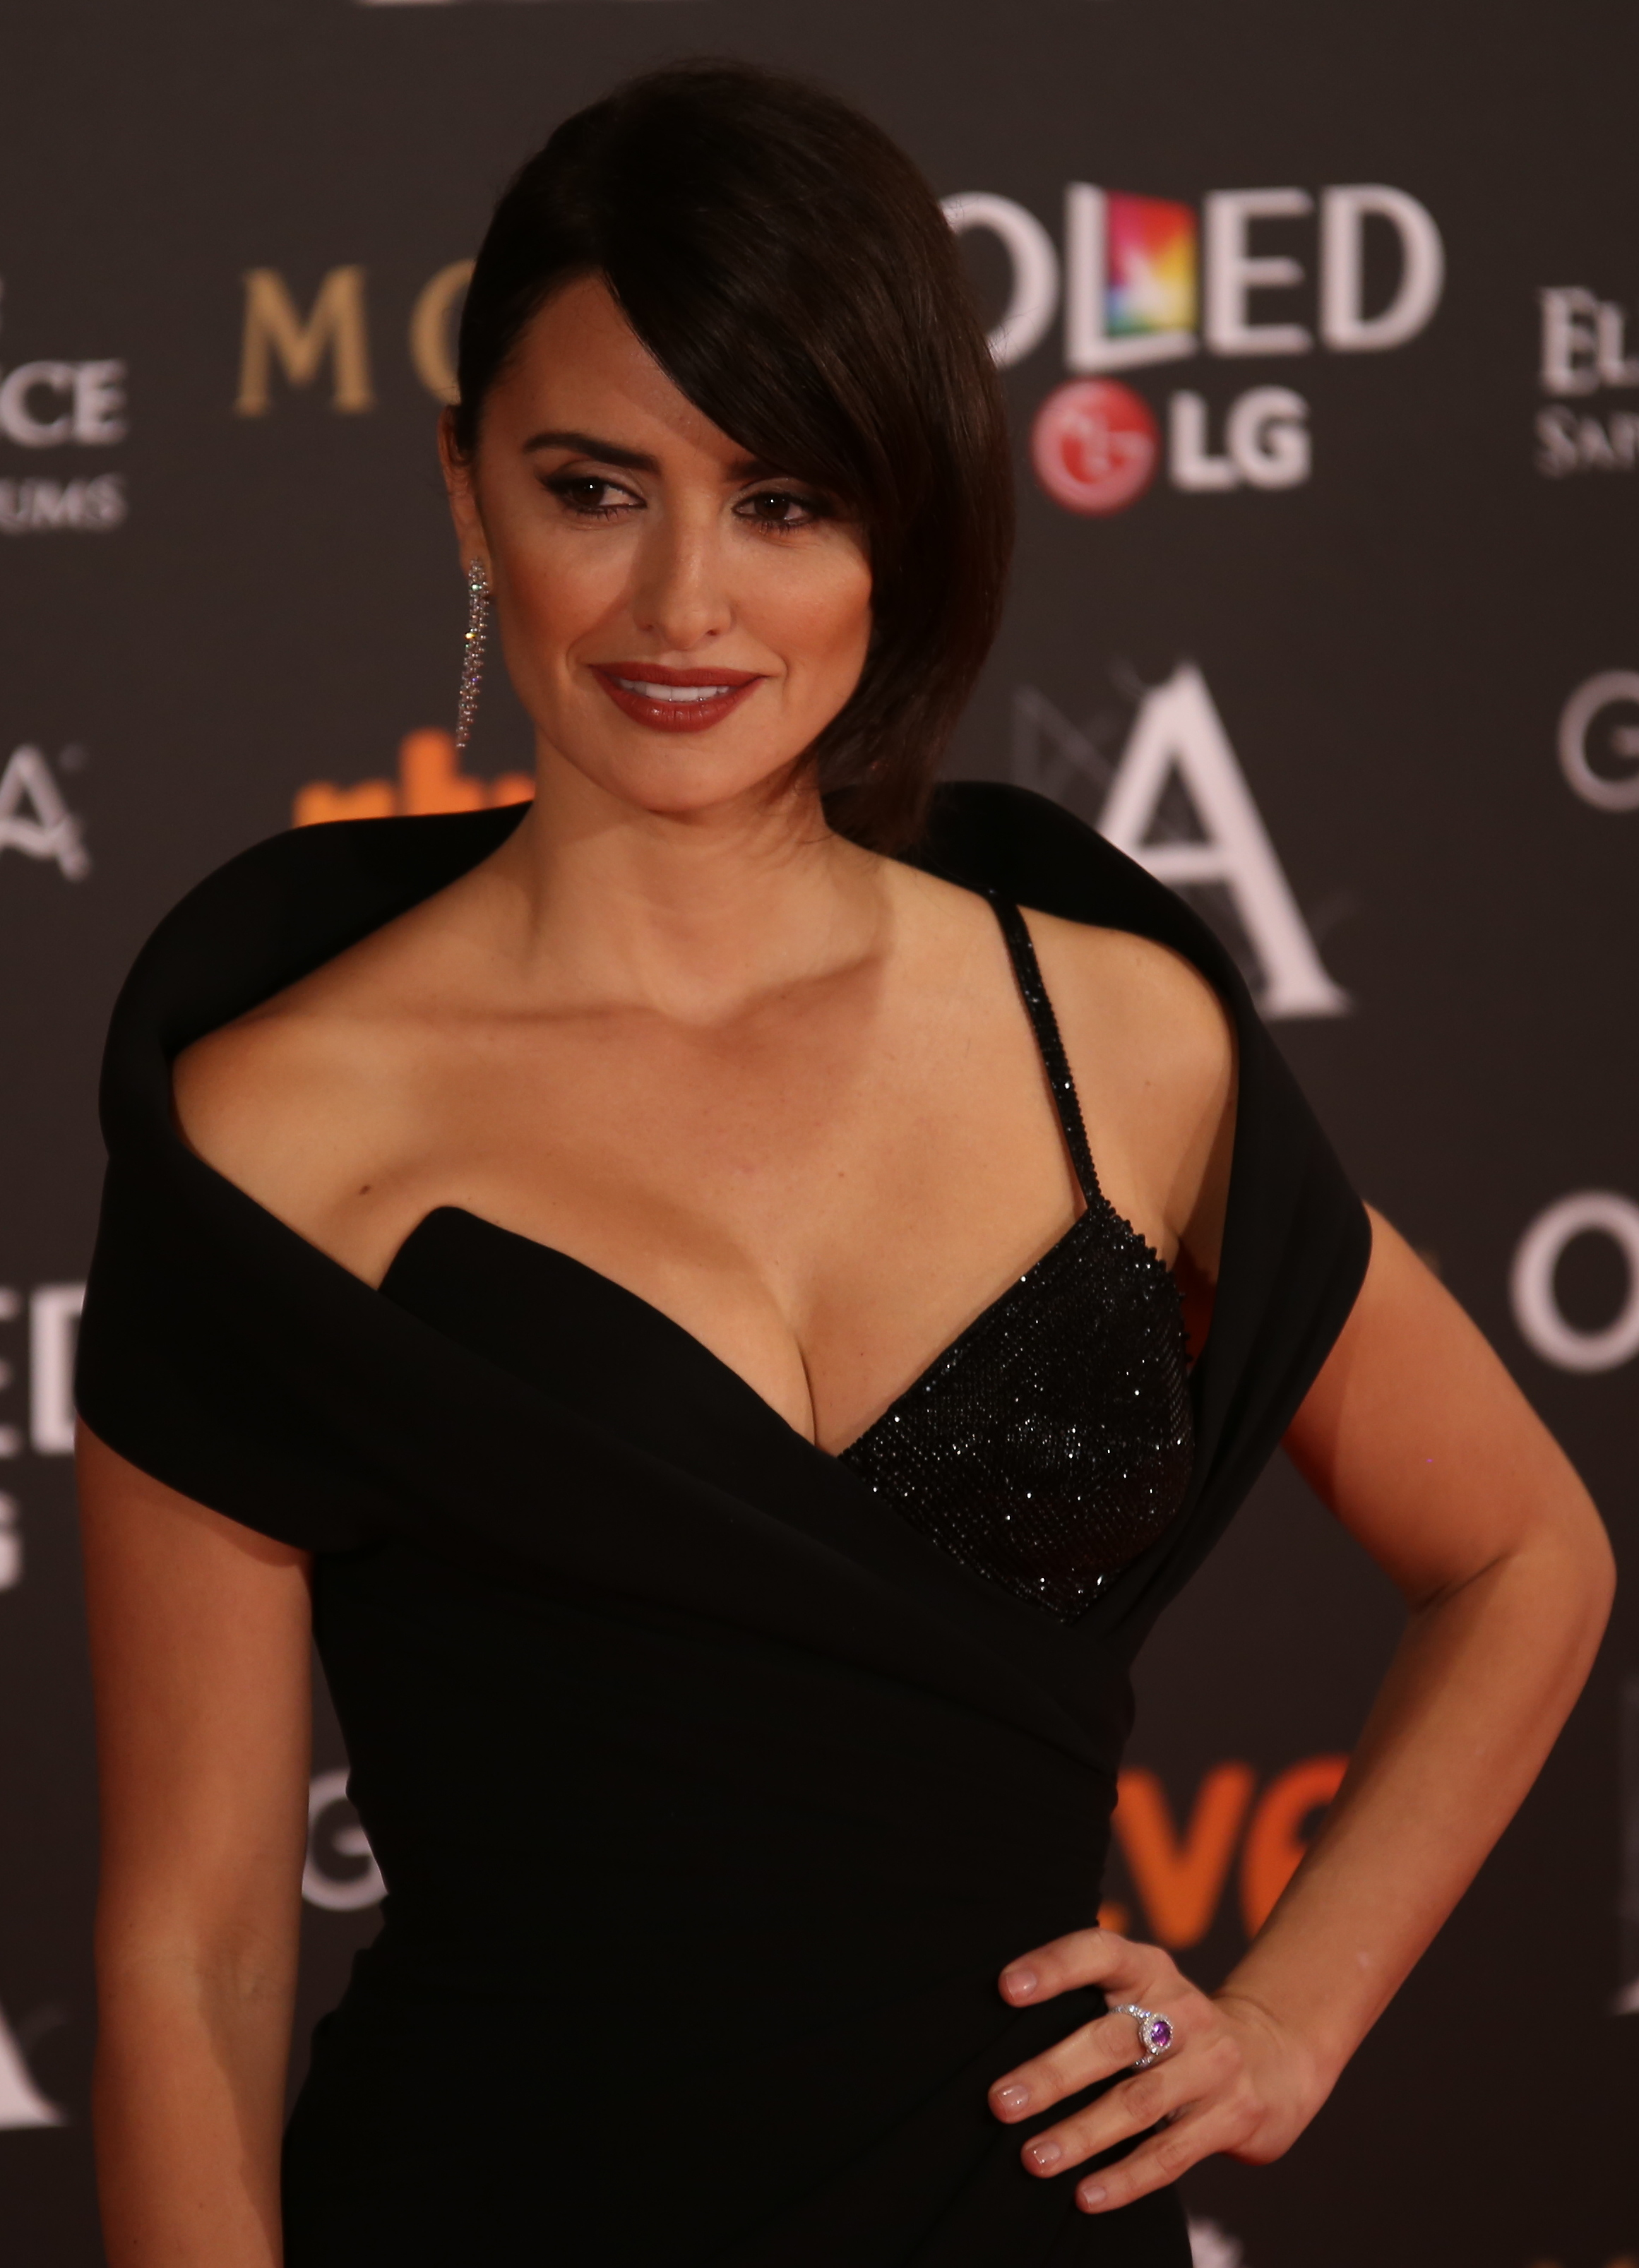 https://upload.wikimedia.org/wikipedia/commons/2/2a/Pen%C3%A9lope_Cruz_at_Premios_Goya_2017.jpg